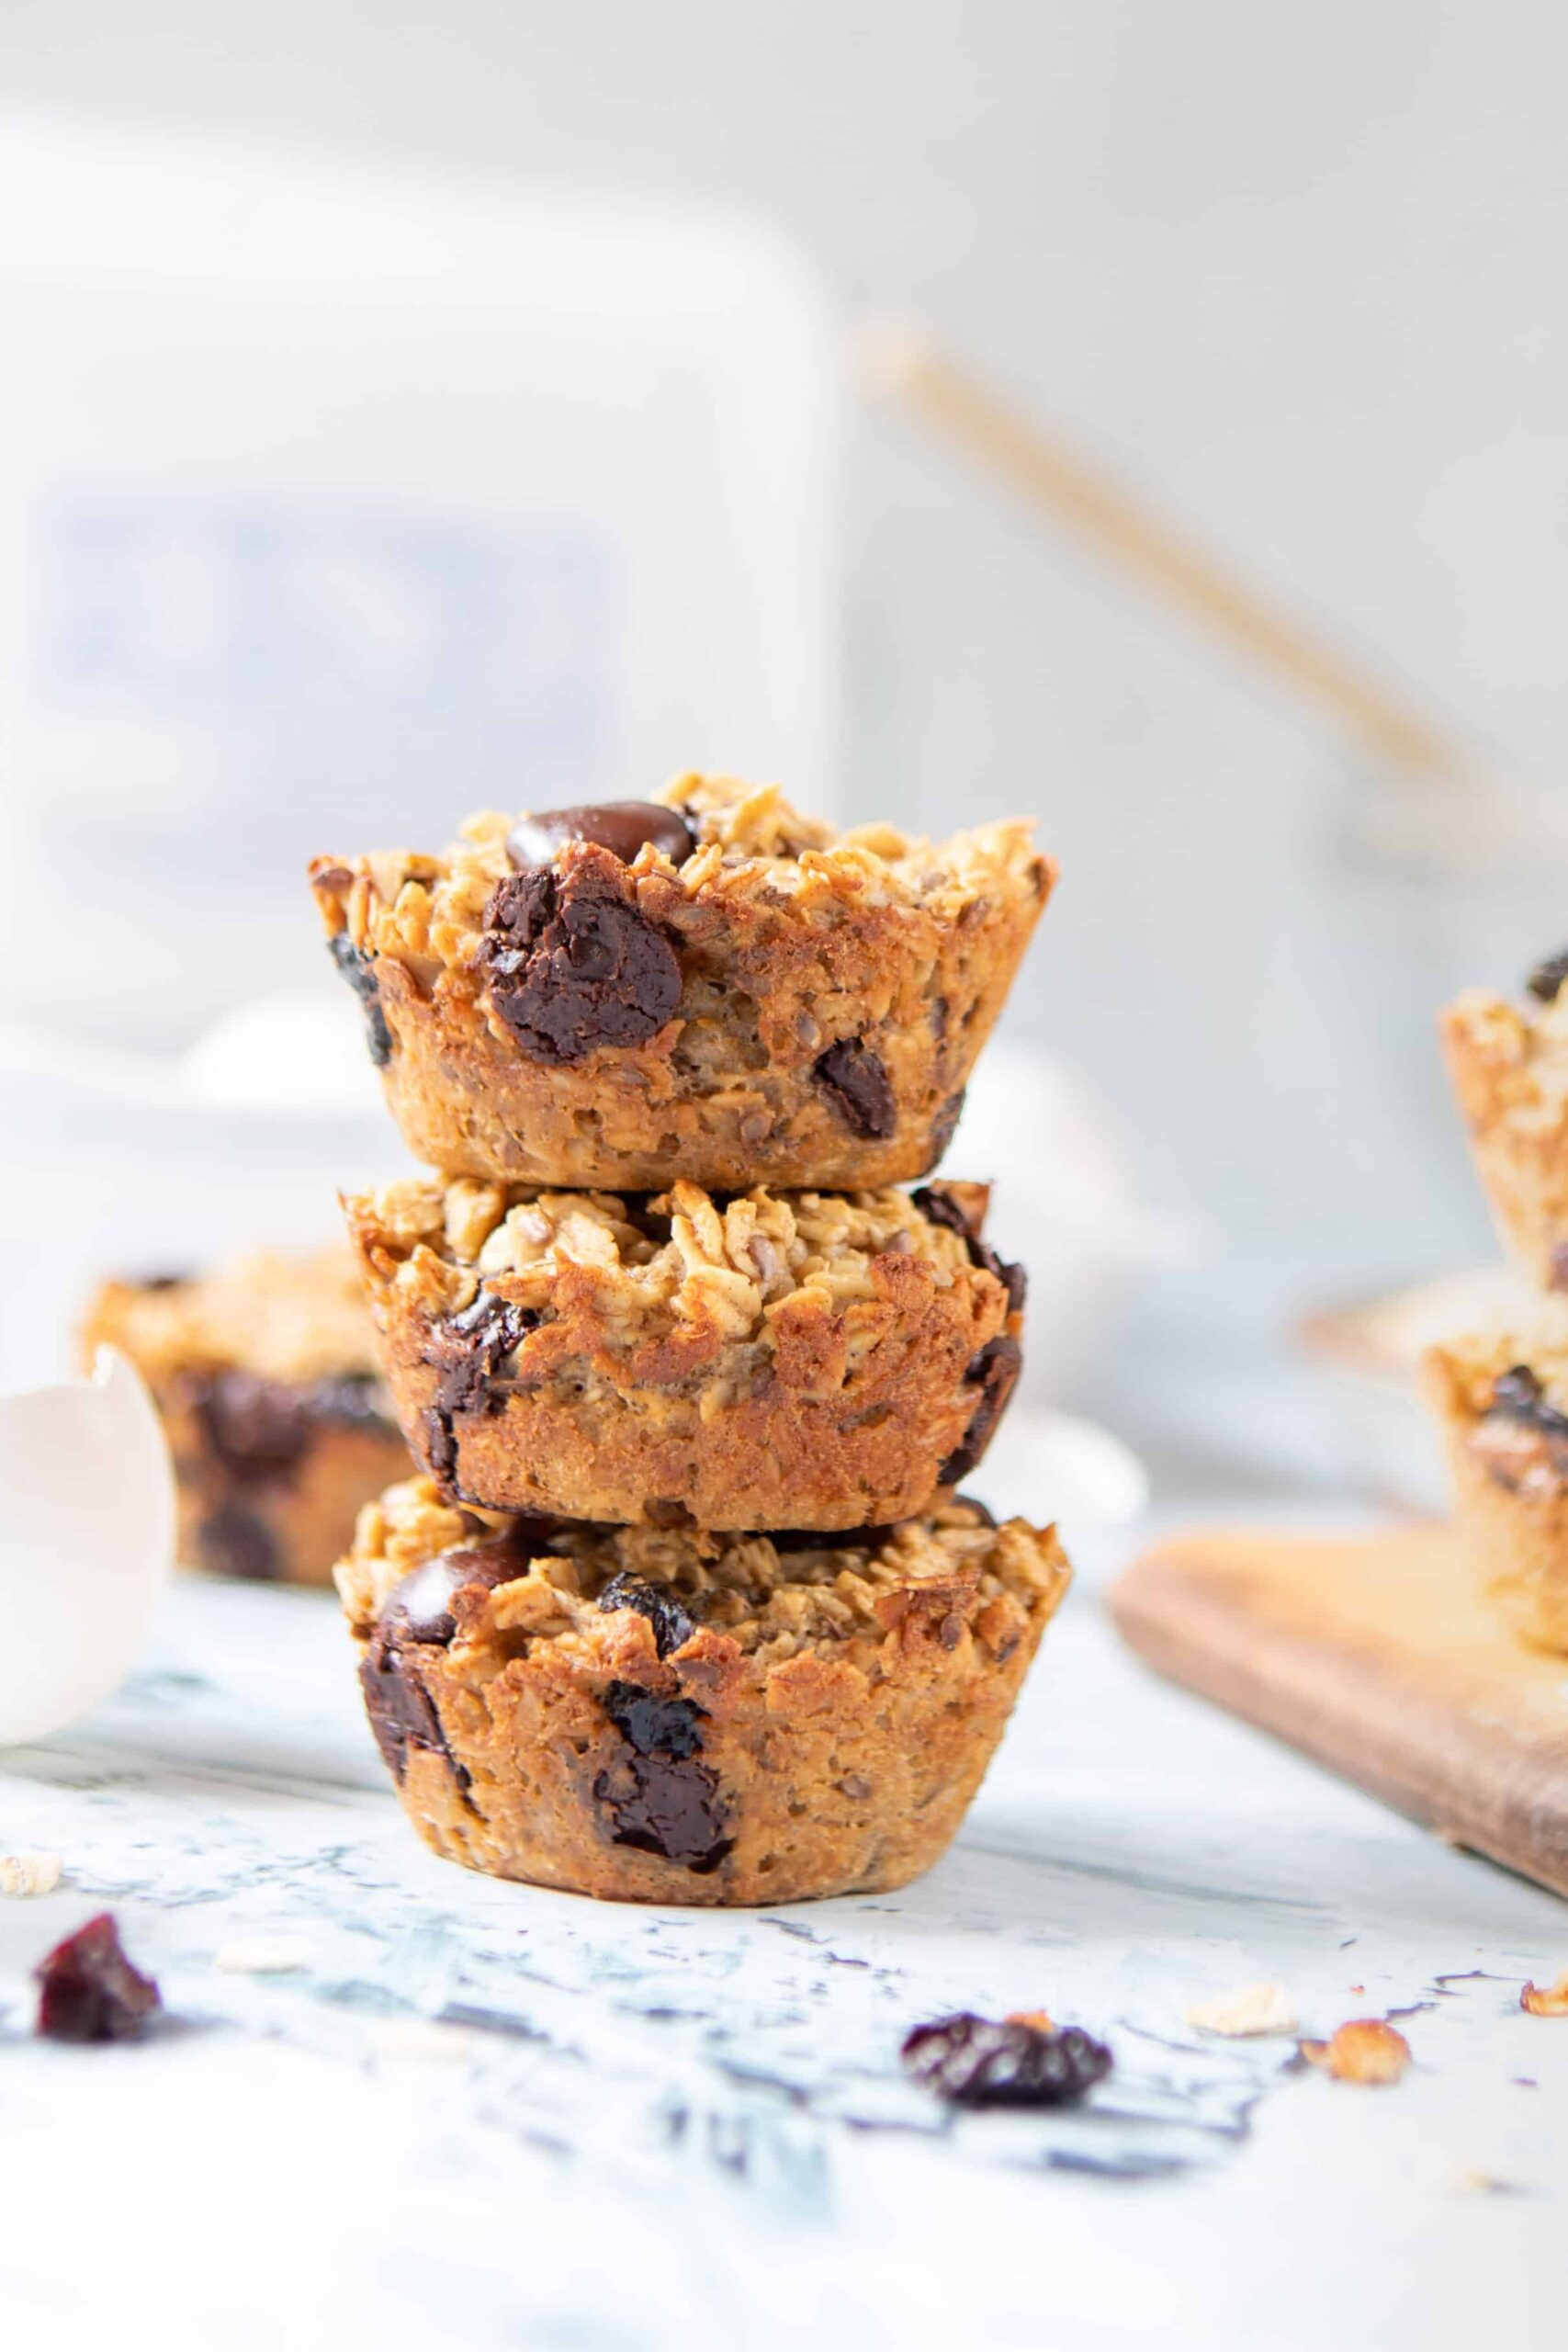 Cherry Chocolate Chip Baked Oatmeal Cups